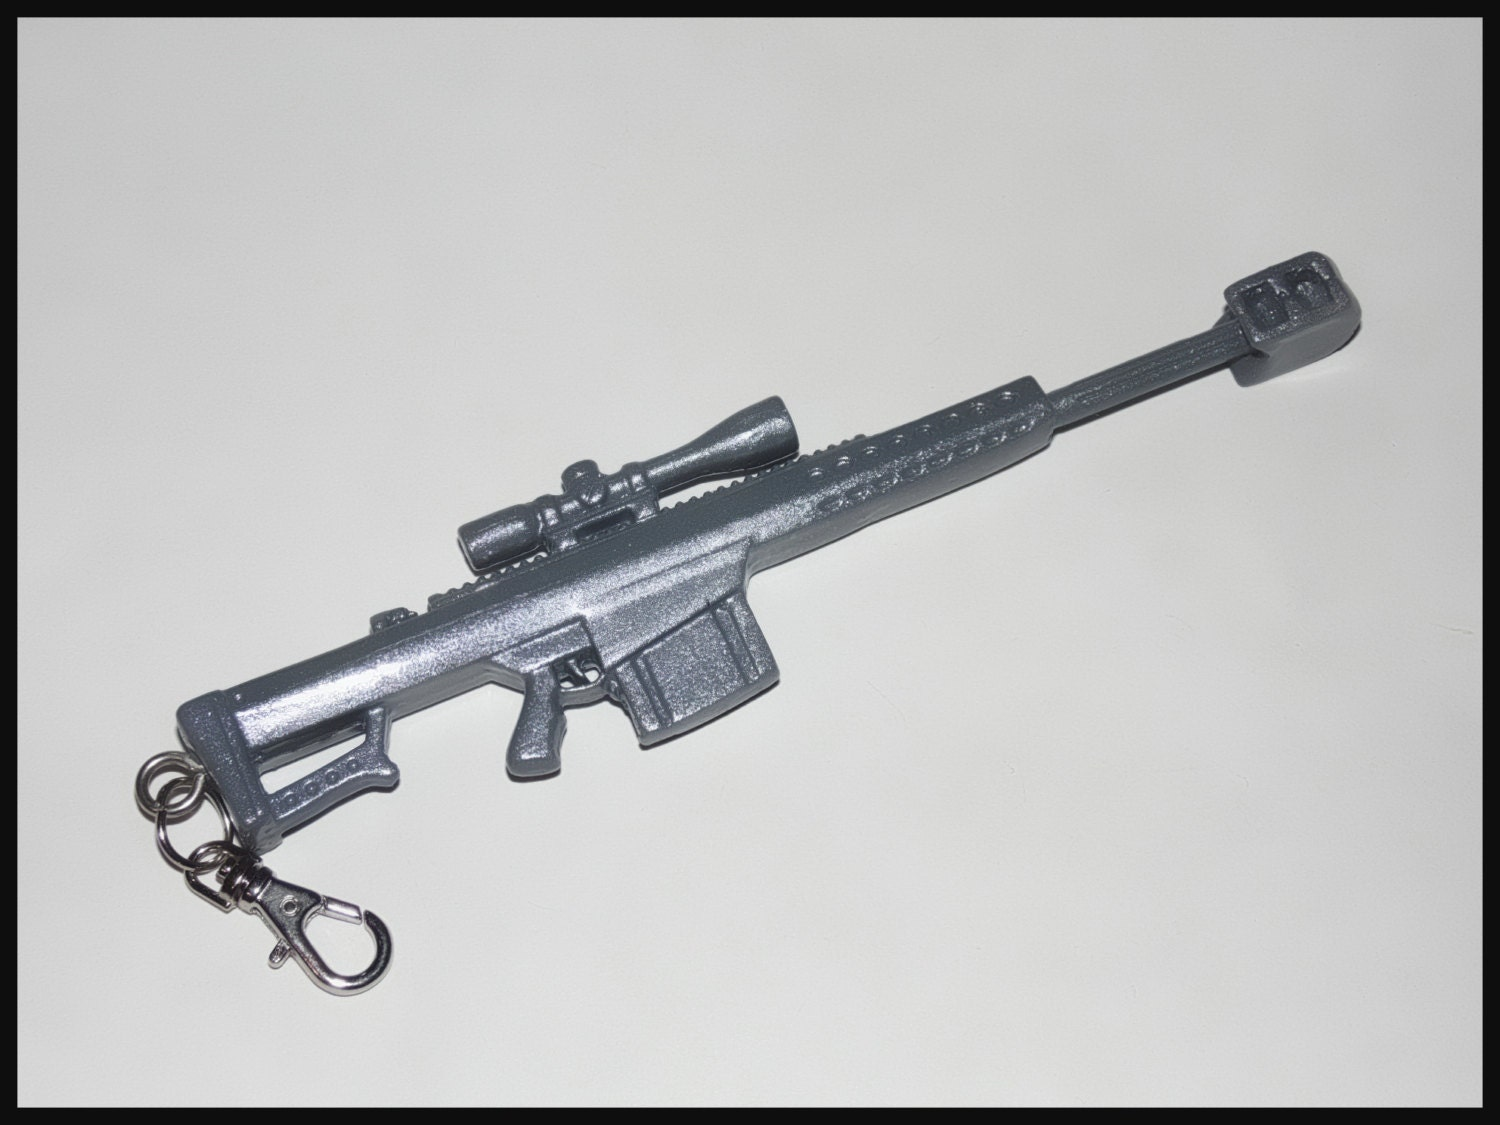 m107 sniper rifle - photo #4